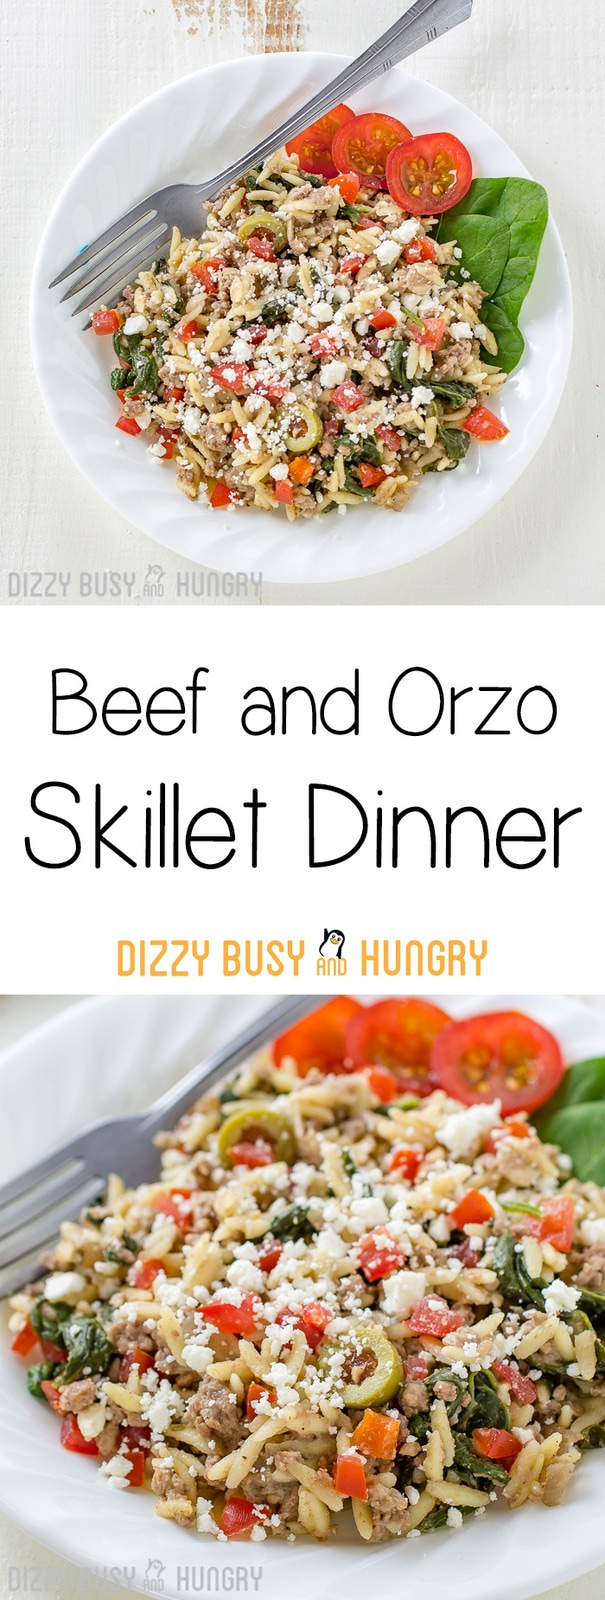 Beef and Orzo Skillet Dinner | DizzyBusyandHungry.com - If you like easy ground beef recipes you can make in one pan, you will love this hearty and delicious Beef and Orzo Skillet Meal!